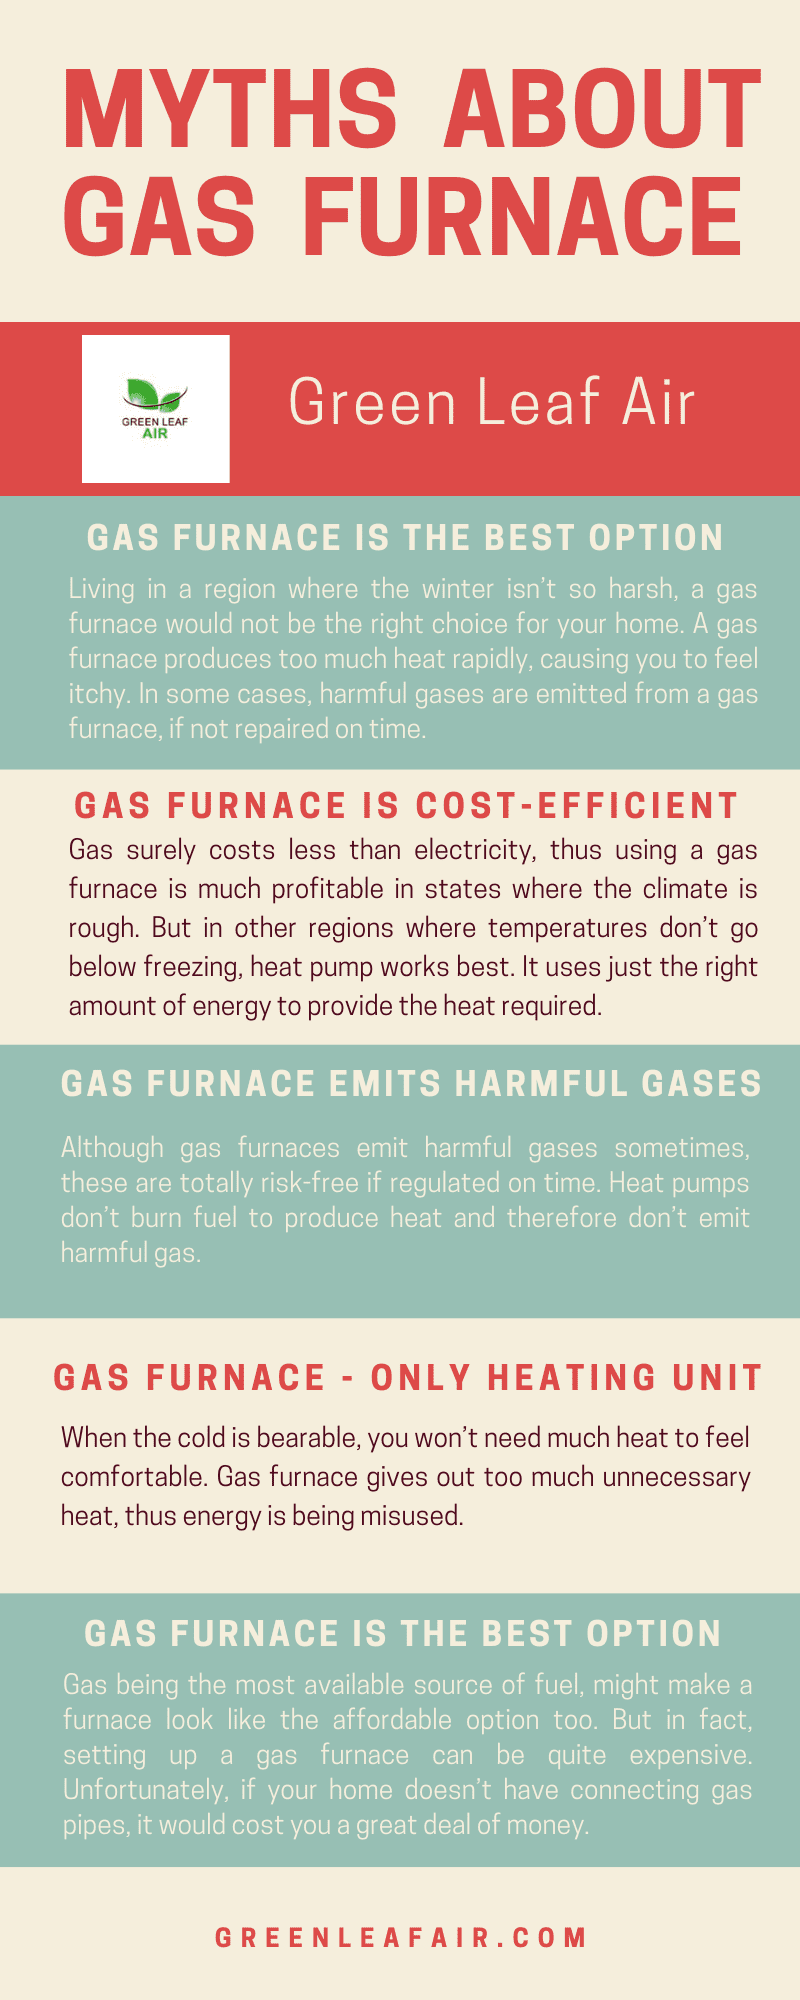 Myths About Gas Furnace